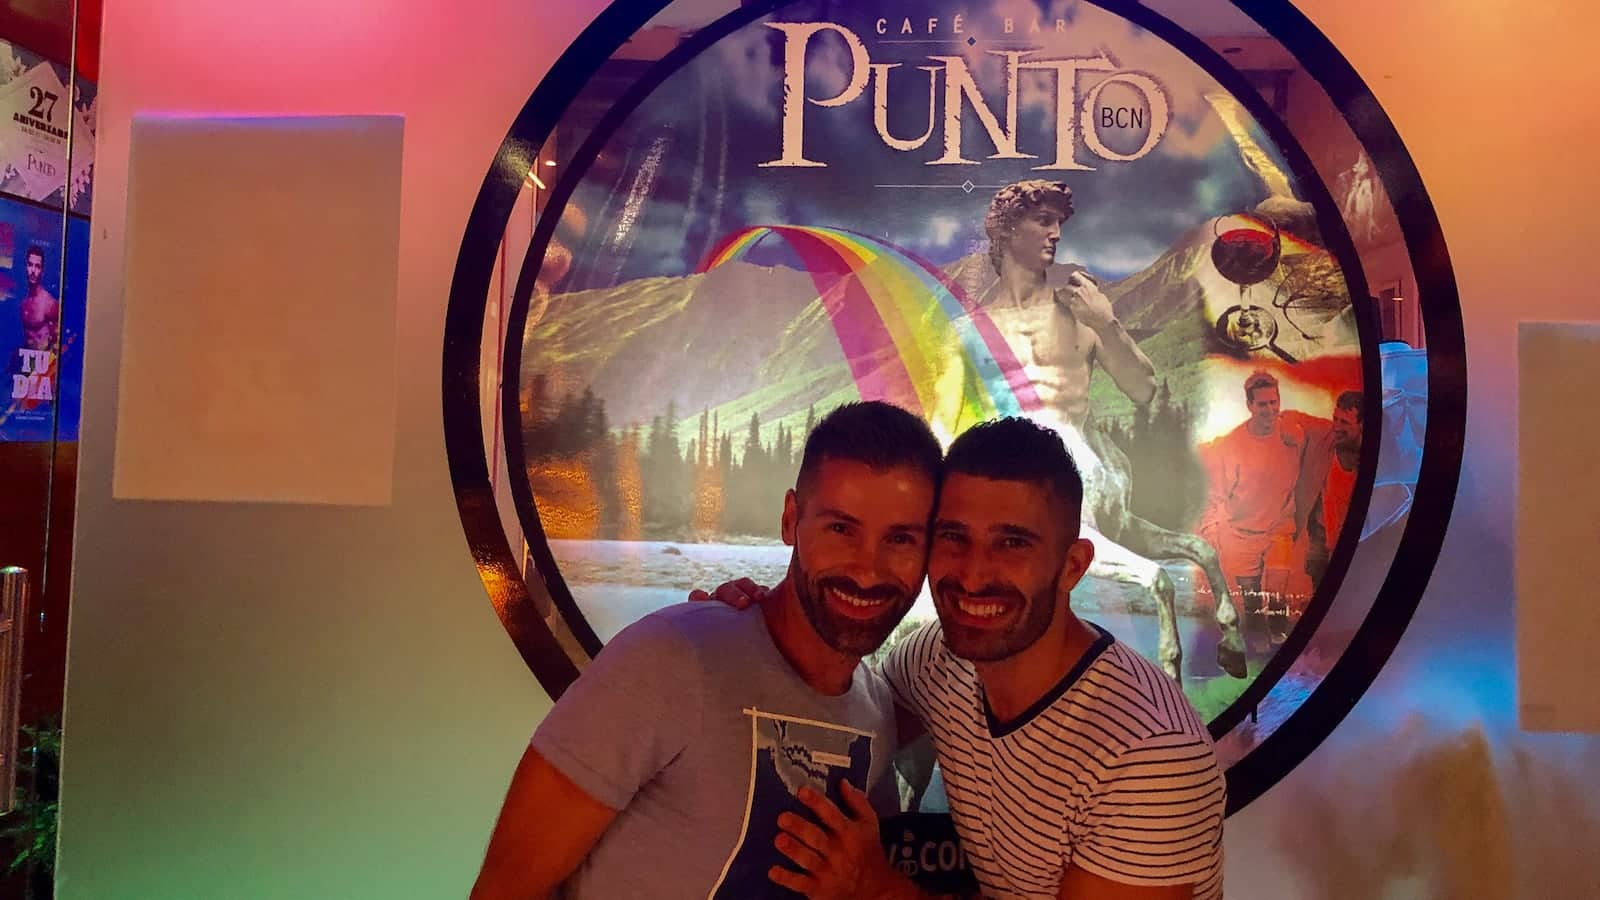 Punto gay bar in Barcelona